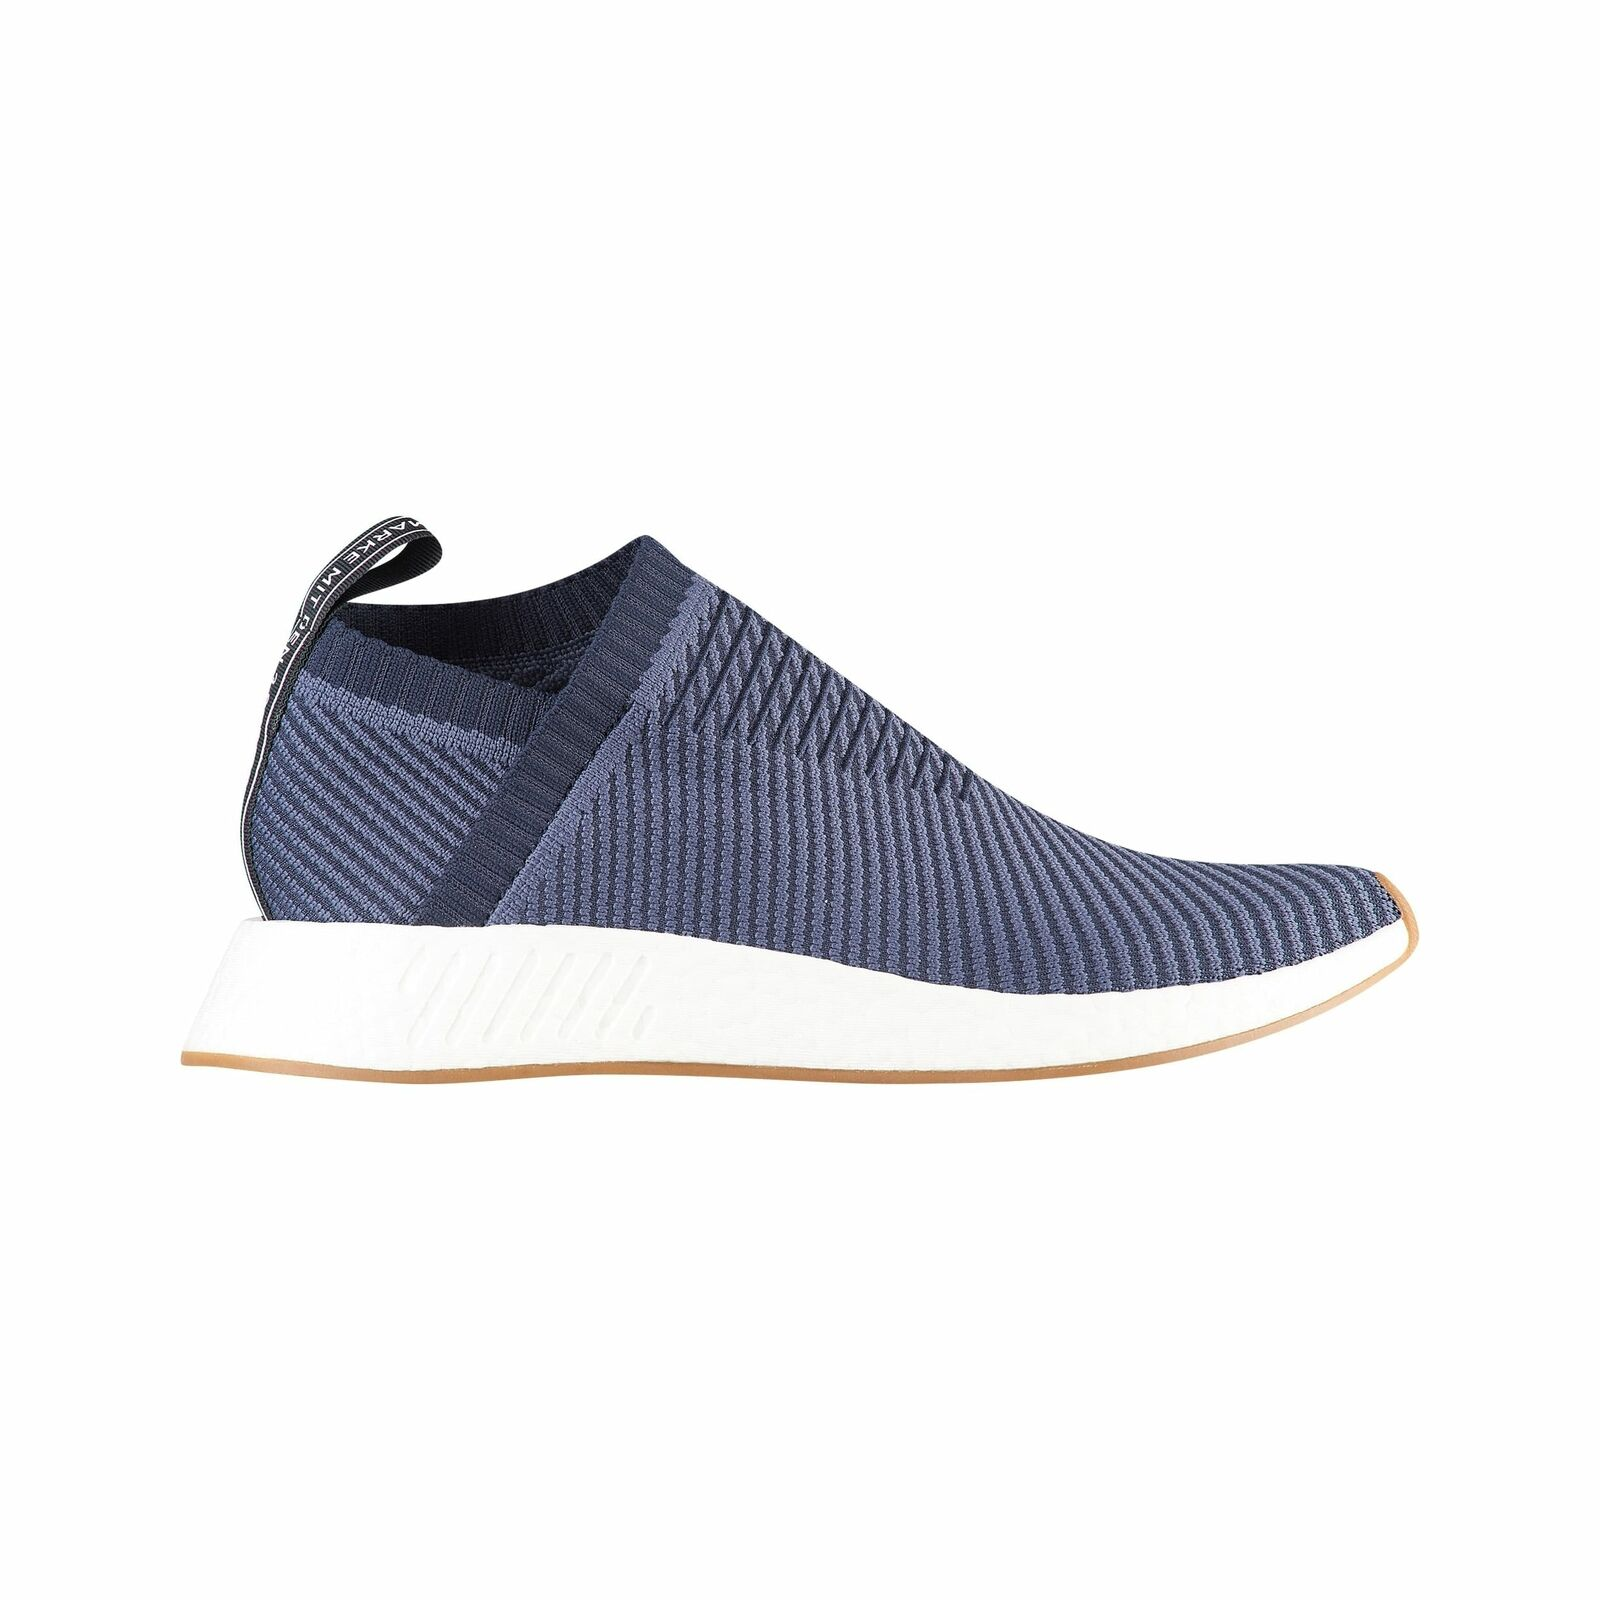 Adidas Originals NMD CS2 Primeknit - Men's Trace bluee Solid Grey Gum D96741